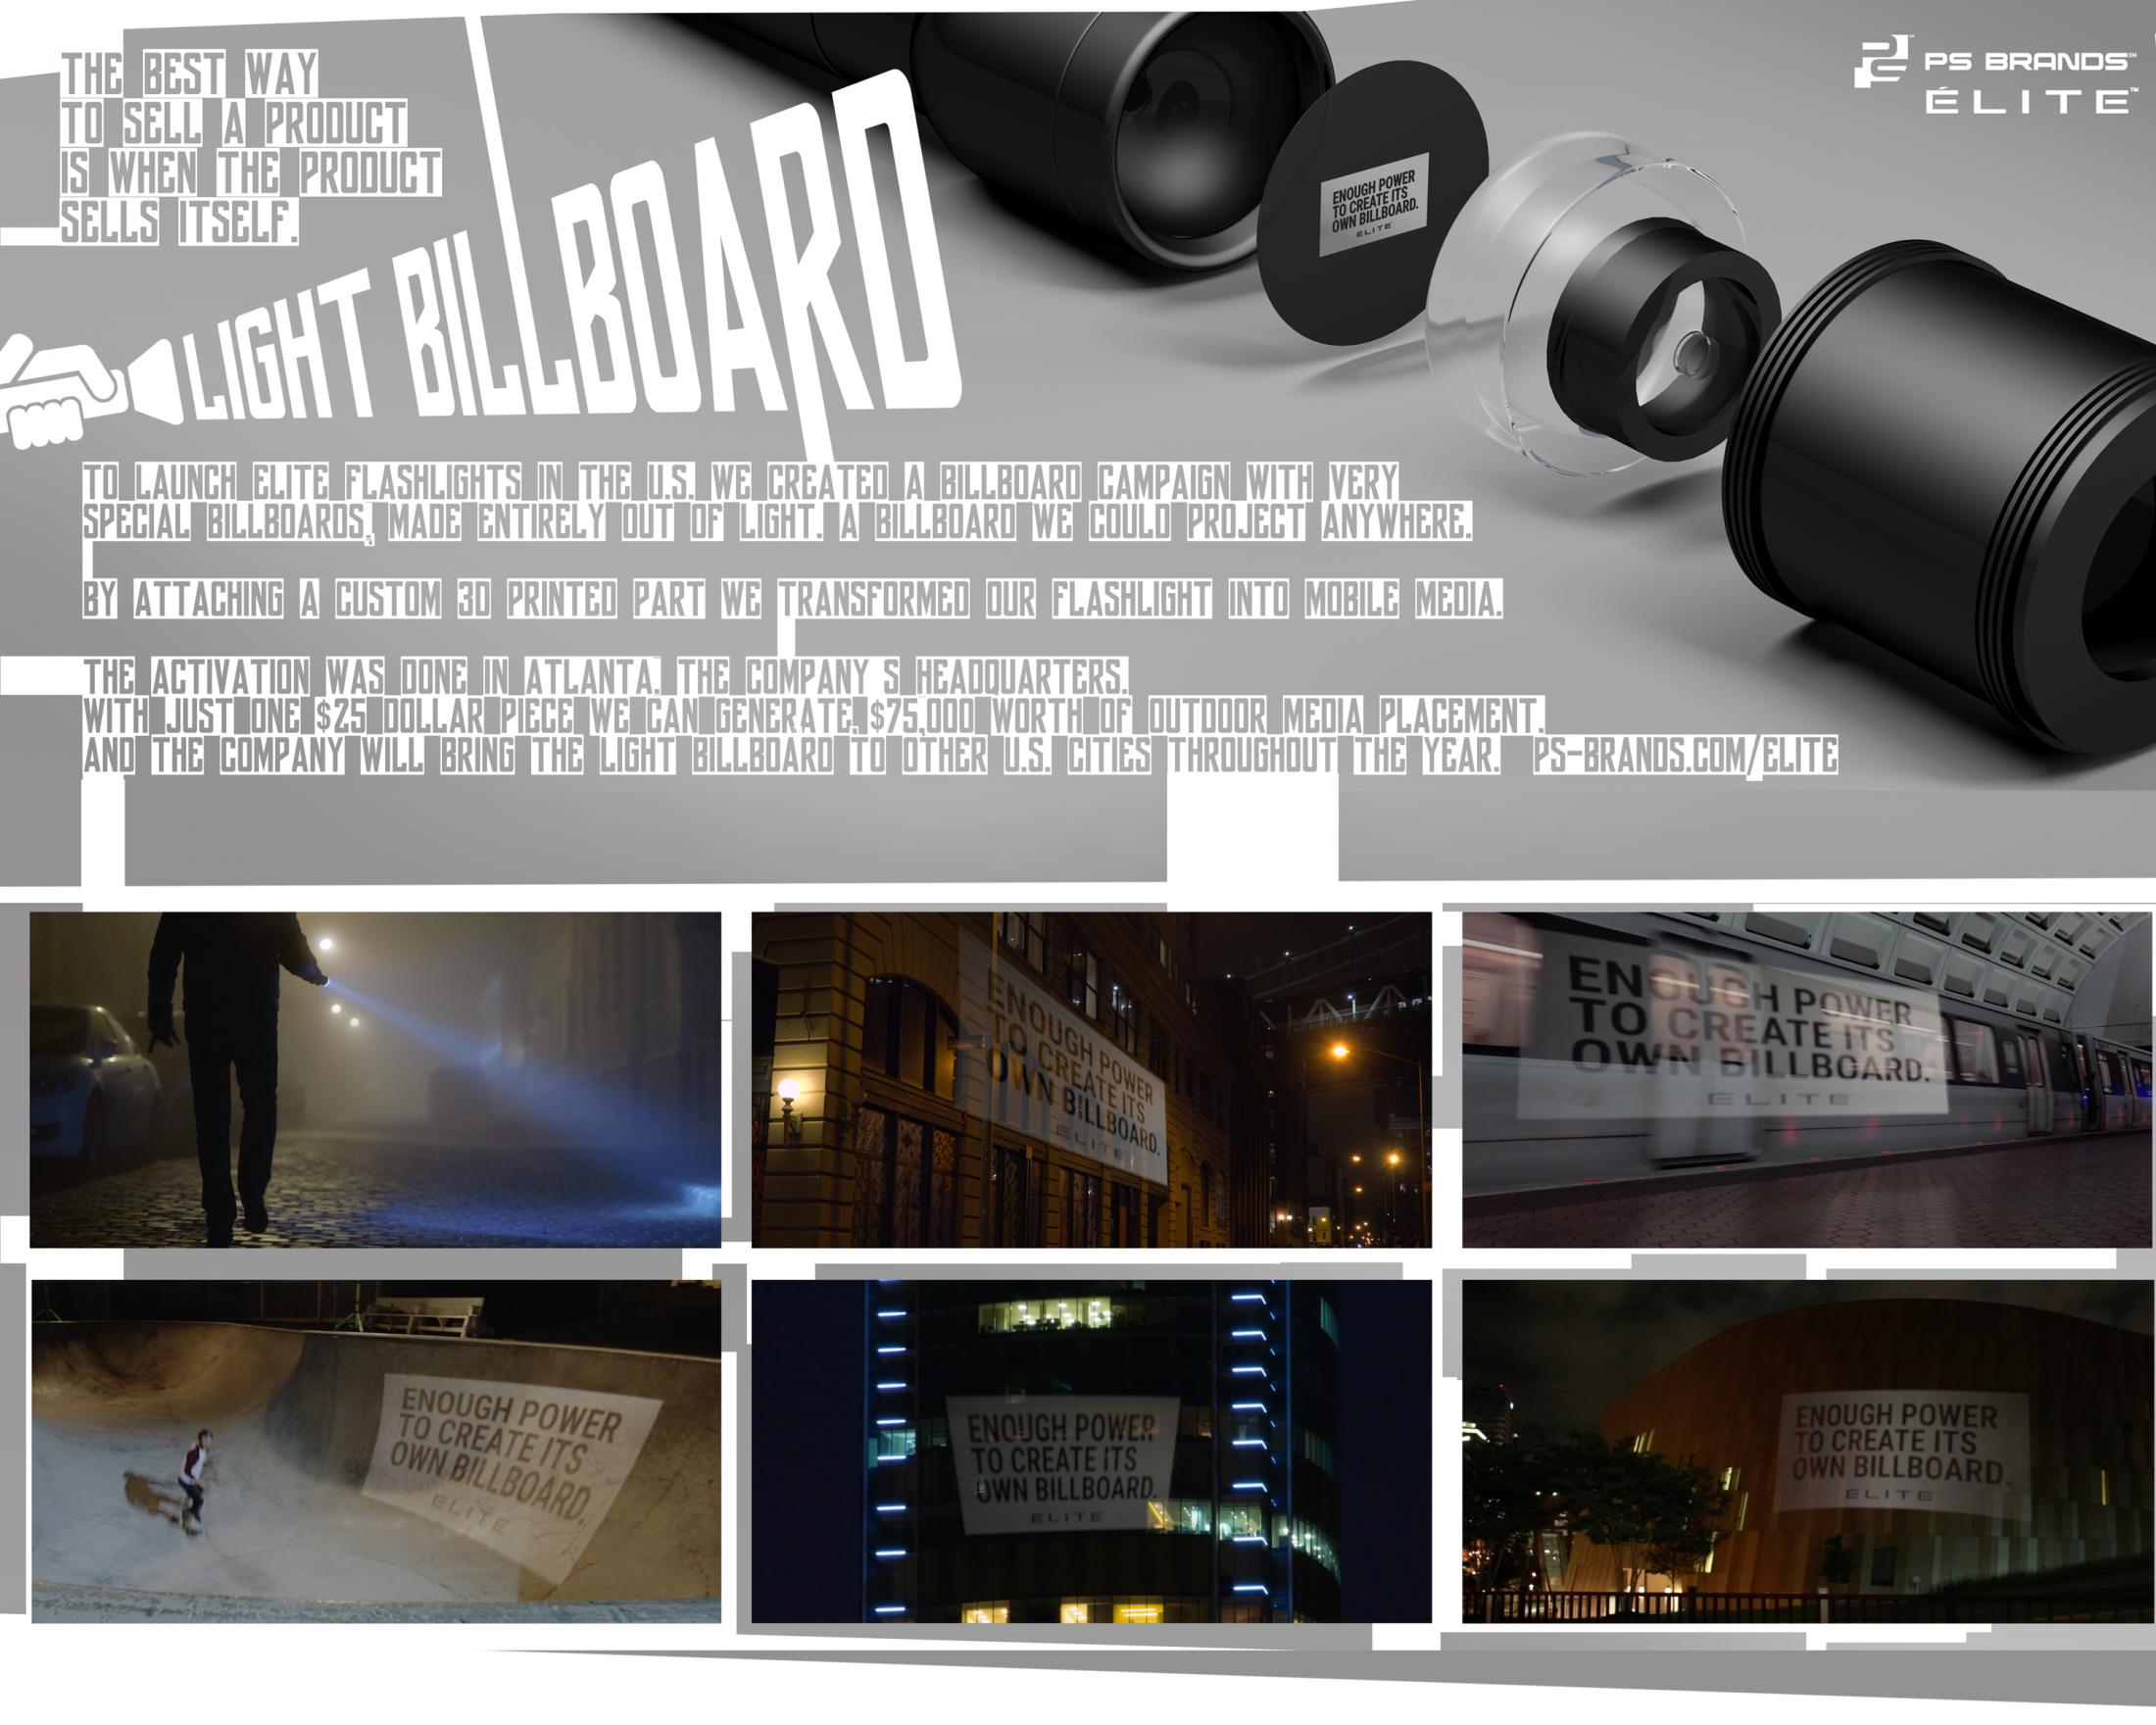 Image Media for Flashlight Billboard